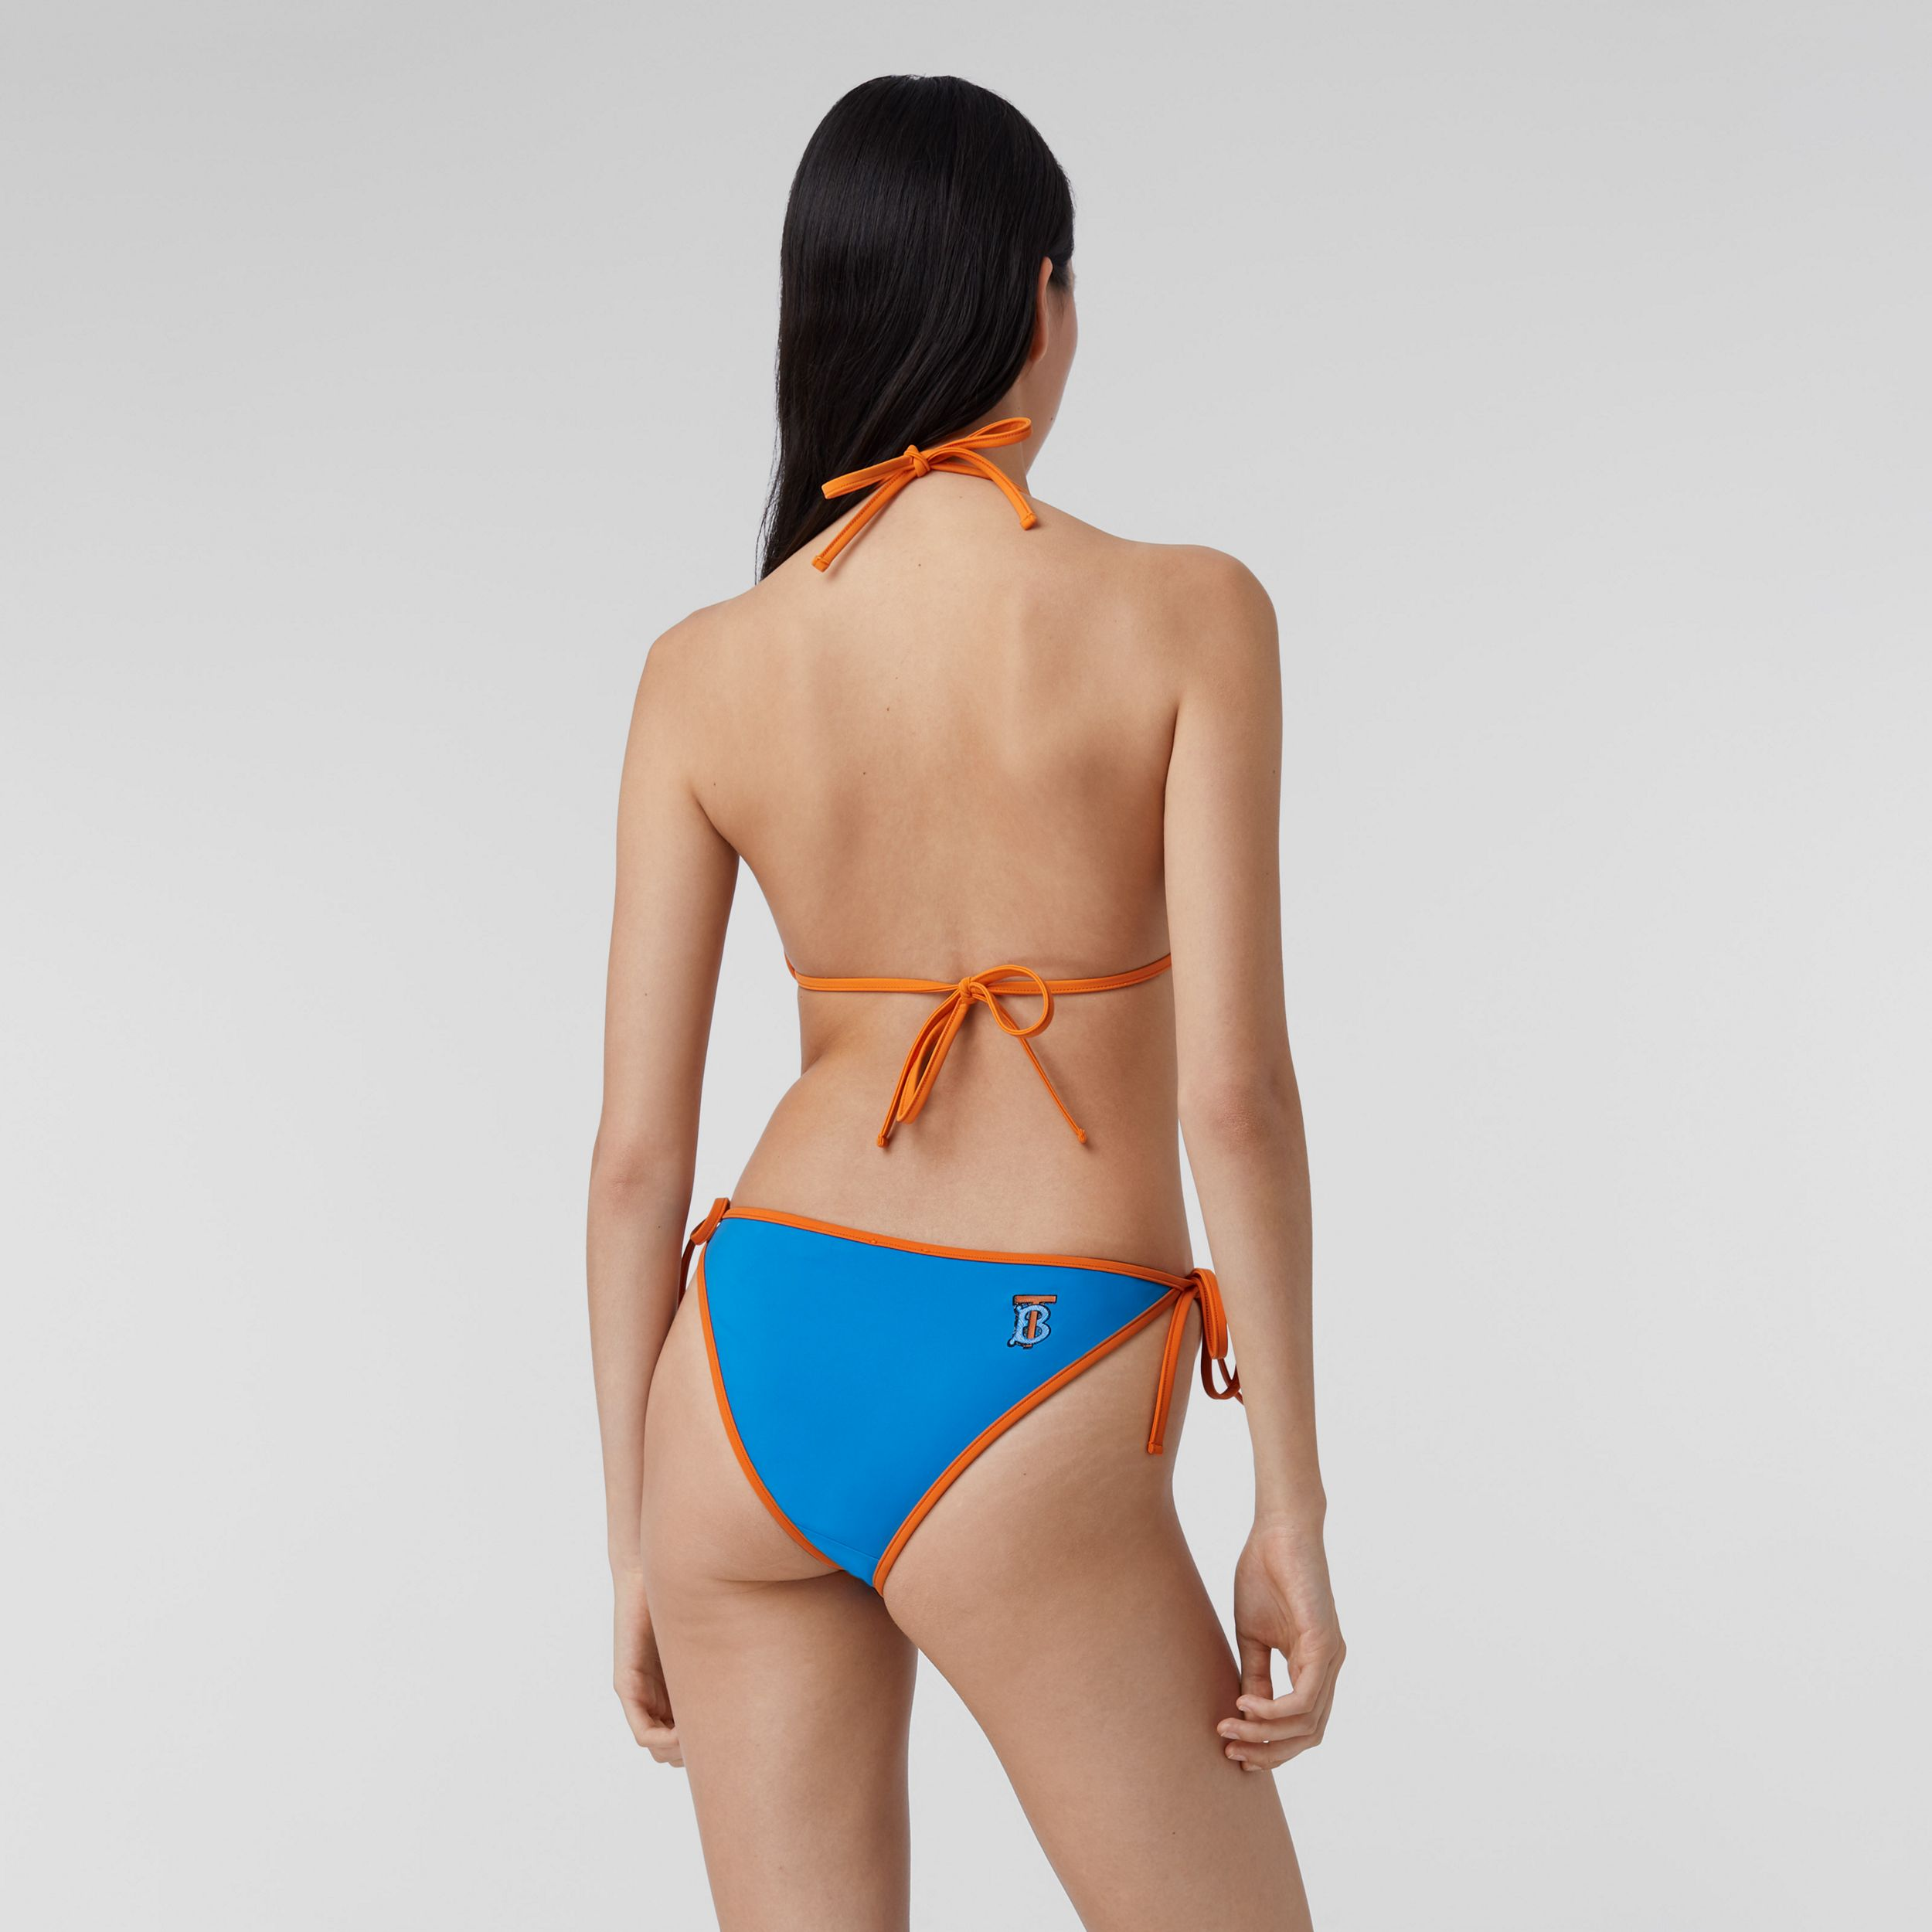 Monogram Motif Triangle Bikini in Bright Cobalt - Women | Burberry Australia - 2